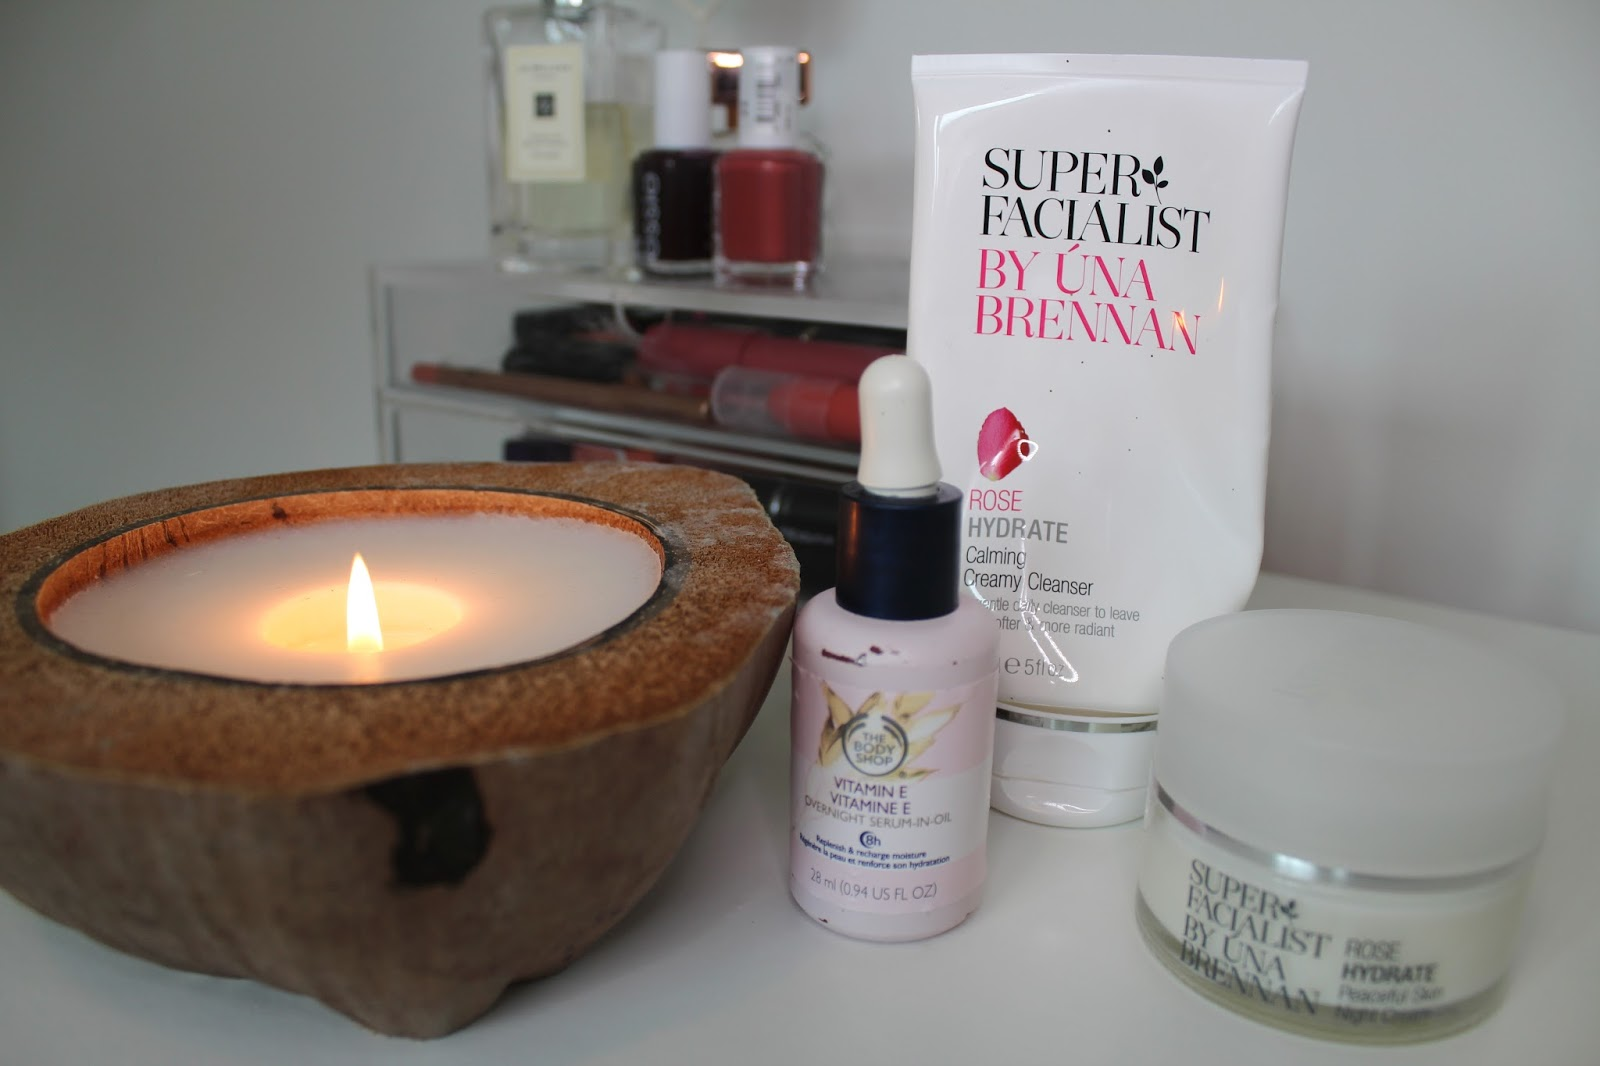 bblogger bblogger skincare beauty skin super facialist una brenna rose hydrate calming creamy cleanser peaceful skin night cream the body shop vitamin e overnight serum in oil recommendations review kirstie pickering skincare for the shopping list twitter instagram